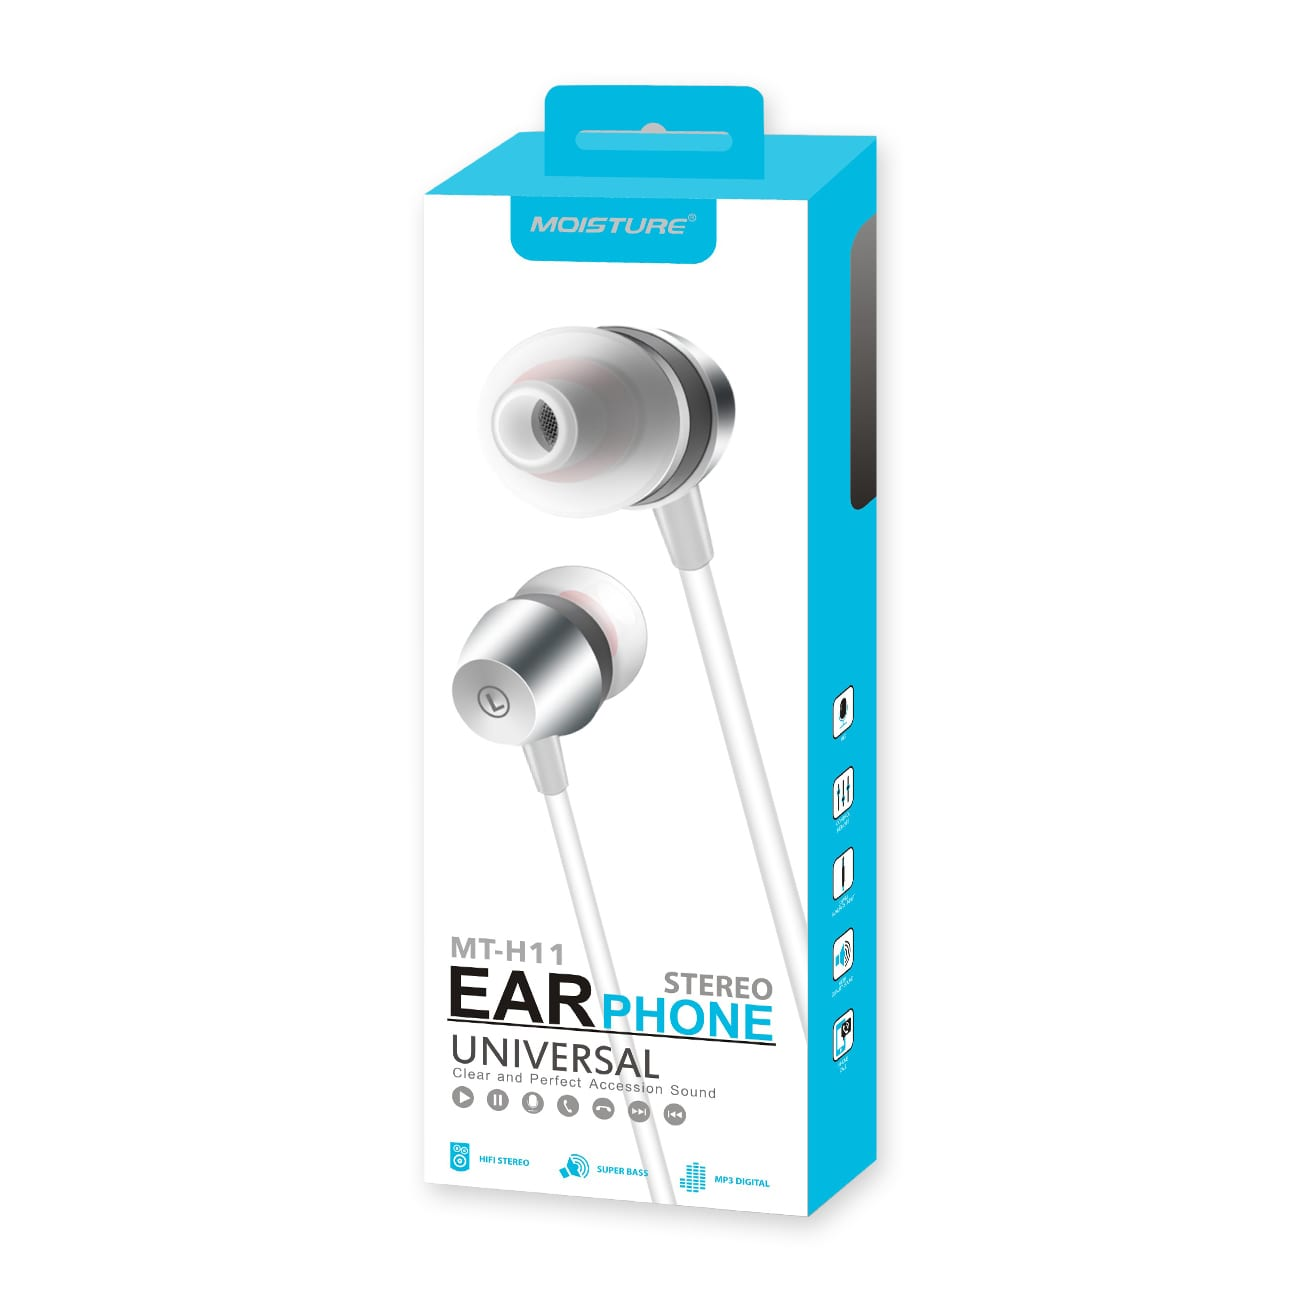 High Quality Sound  Universal In-ear Earphones In Silver